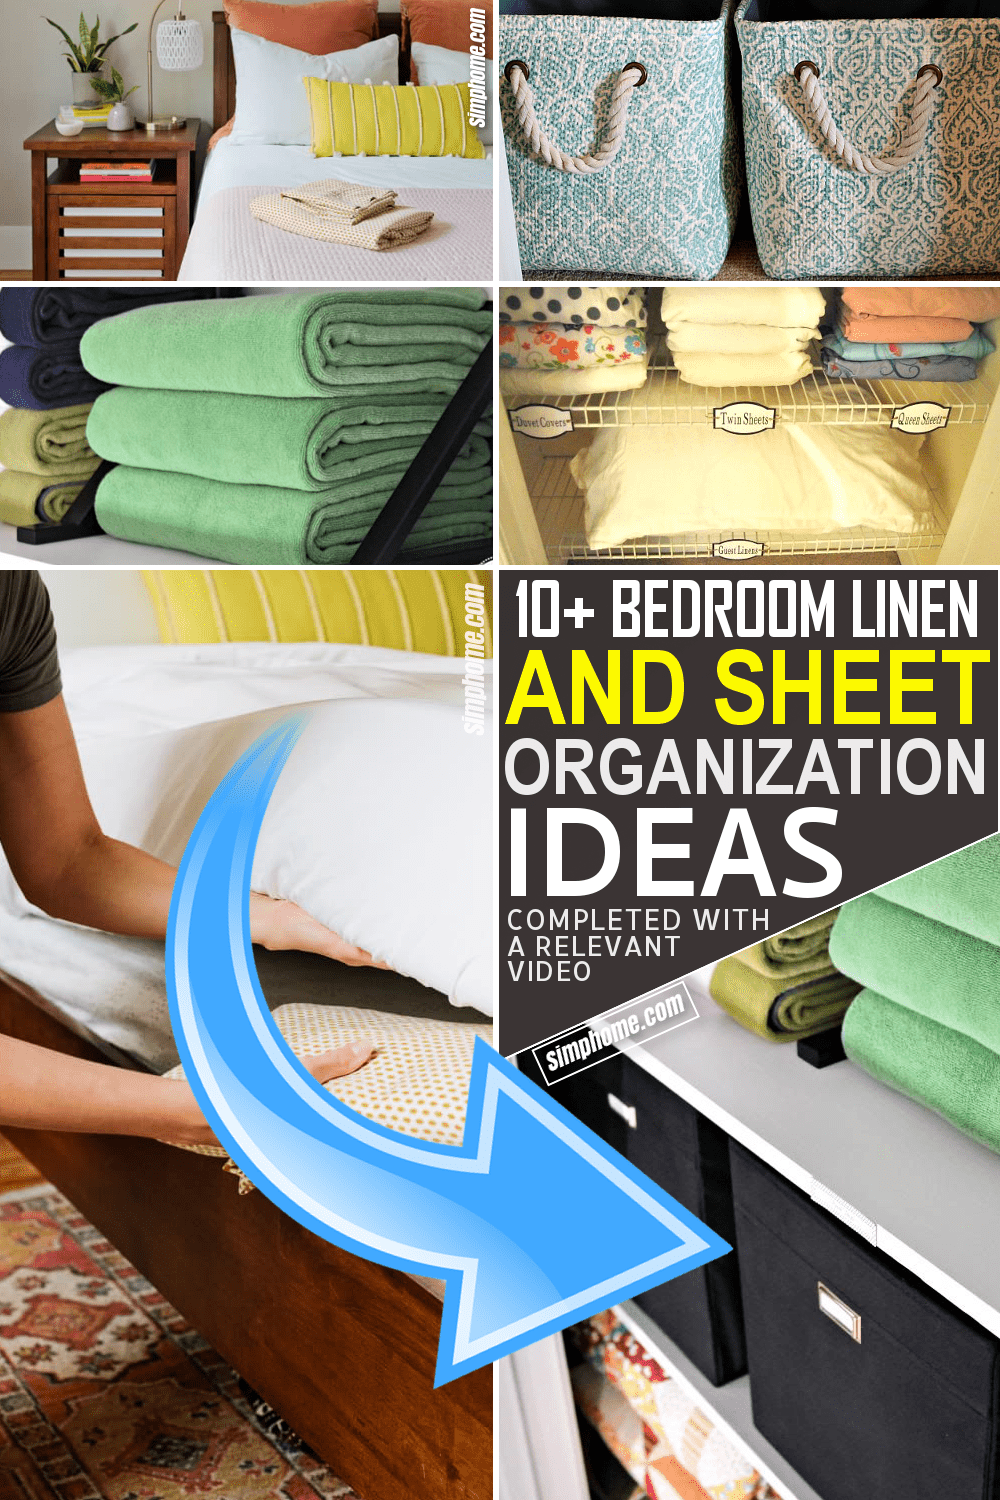 10 Bedroom Linen and Sheet Organization Ideas By Simphome.comFeatured image